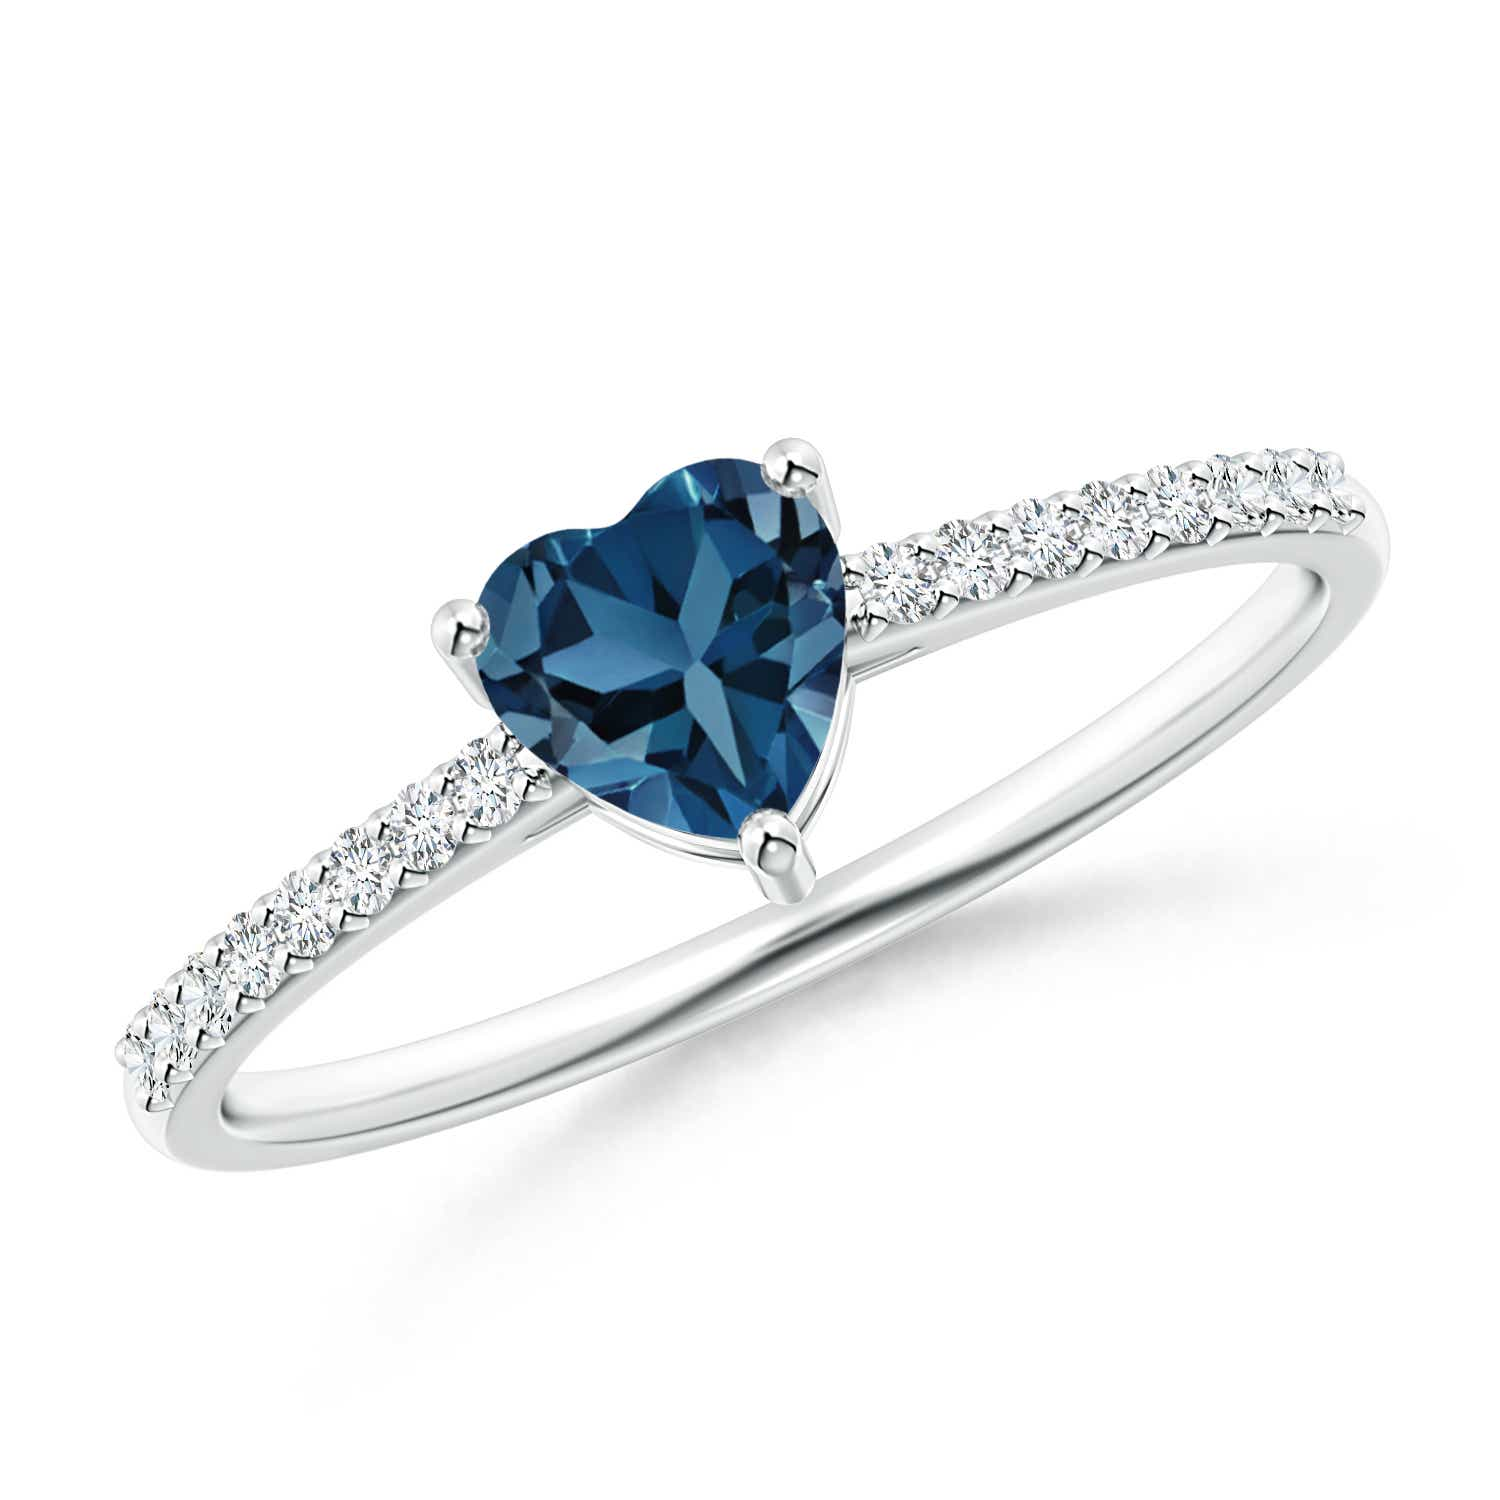 Angara Heart Shaped Swiss Blue Topaz Diamond Ring in White Gold nFvbg